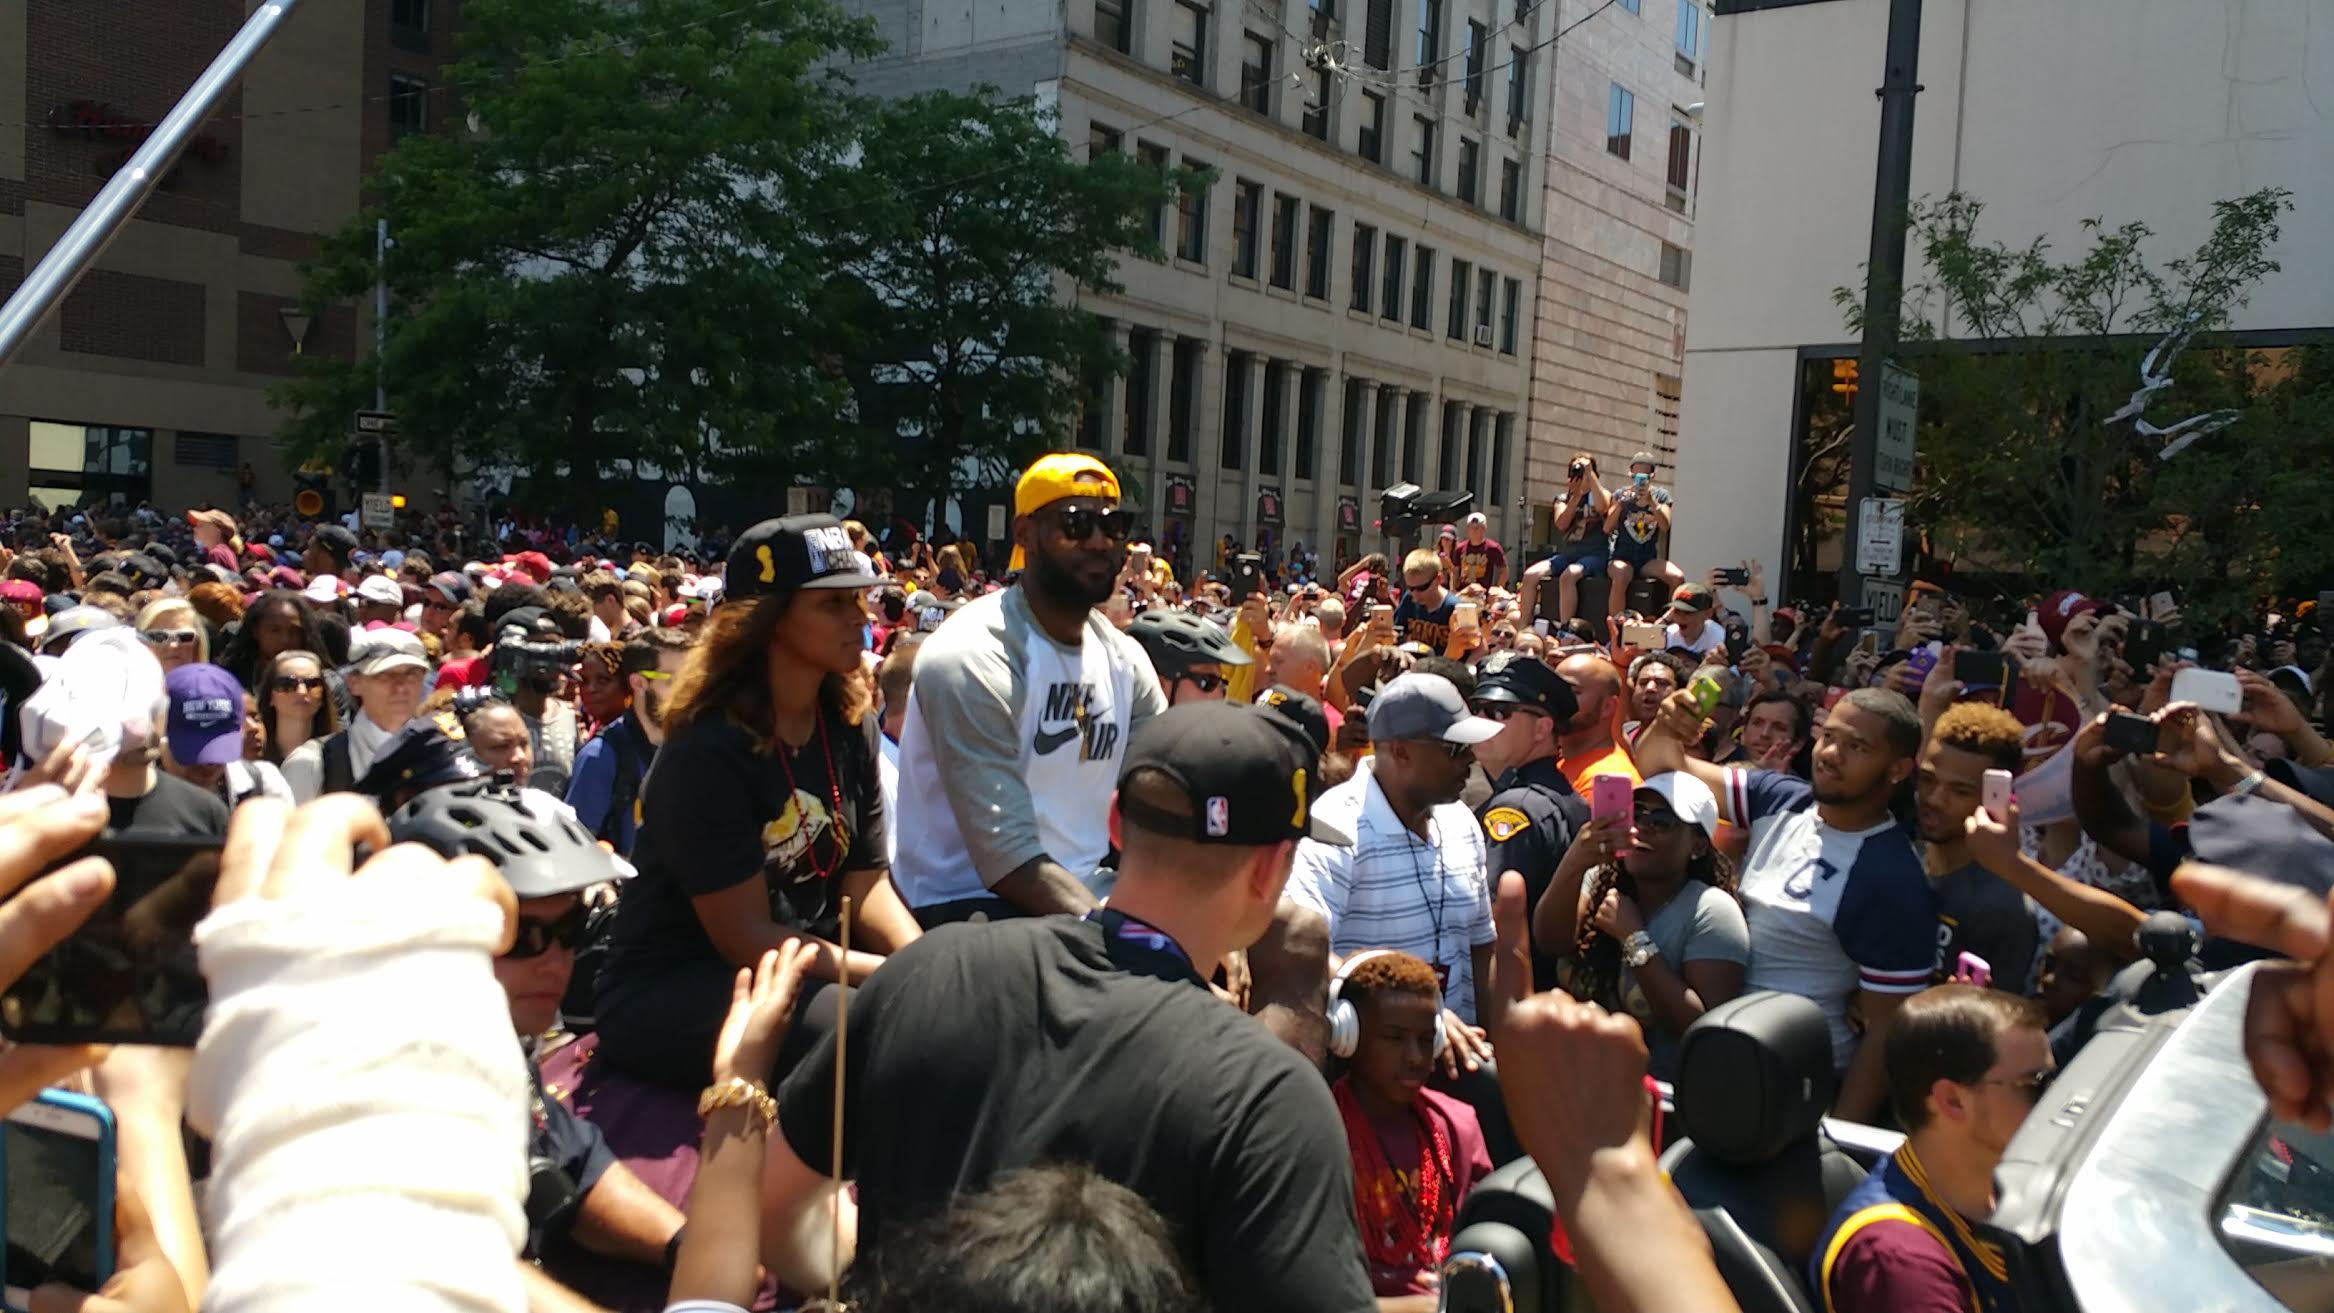 LeBron James' car travels through the throngs of adoring fans